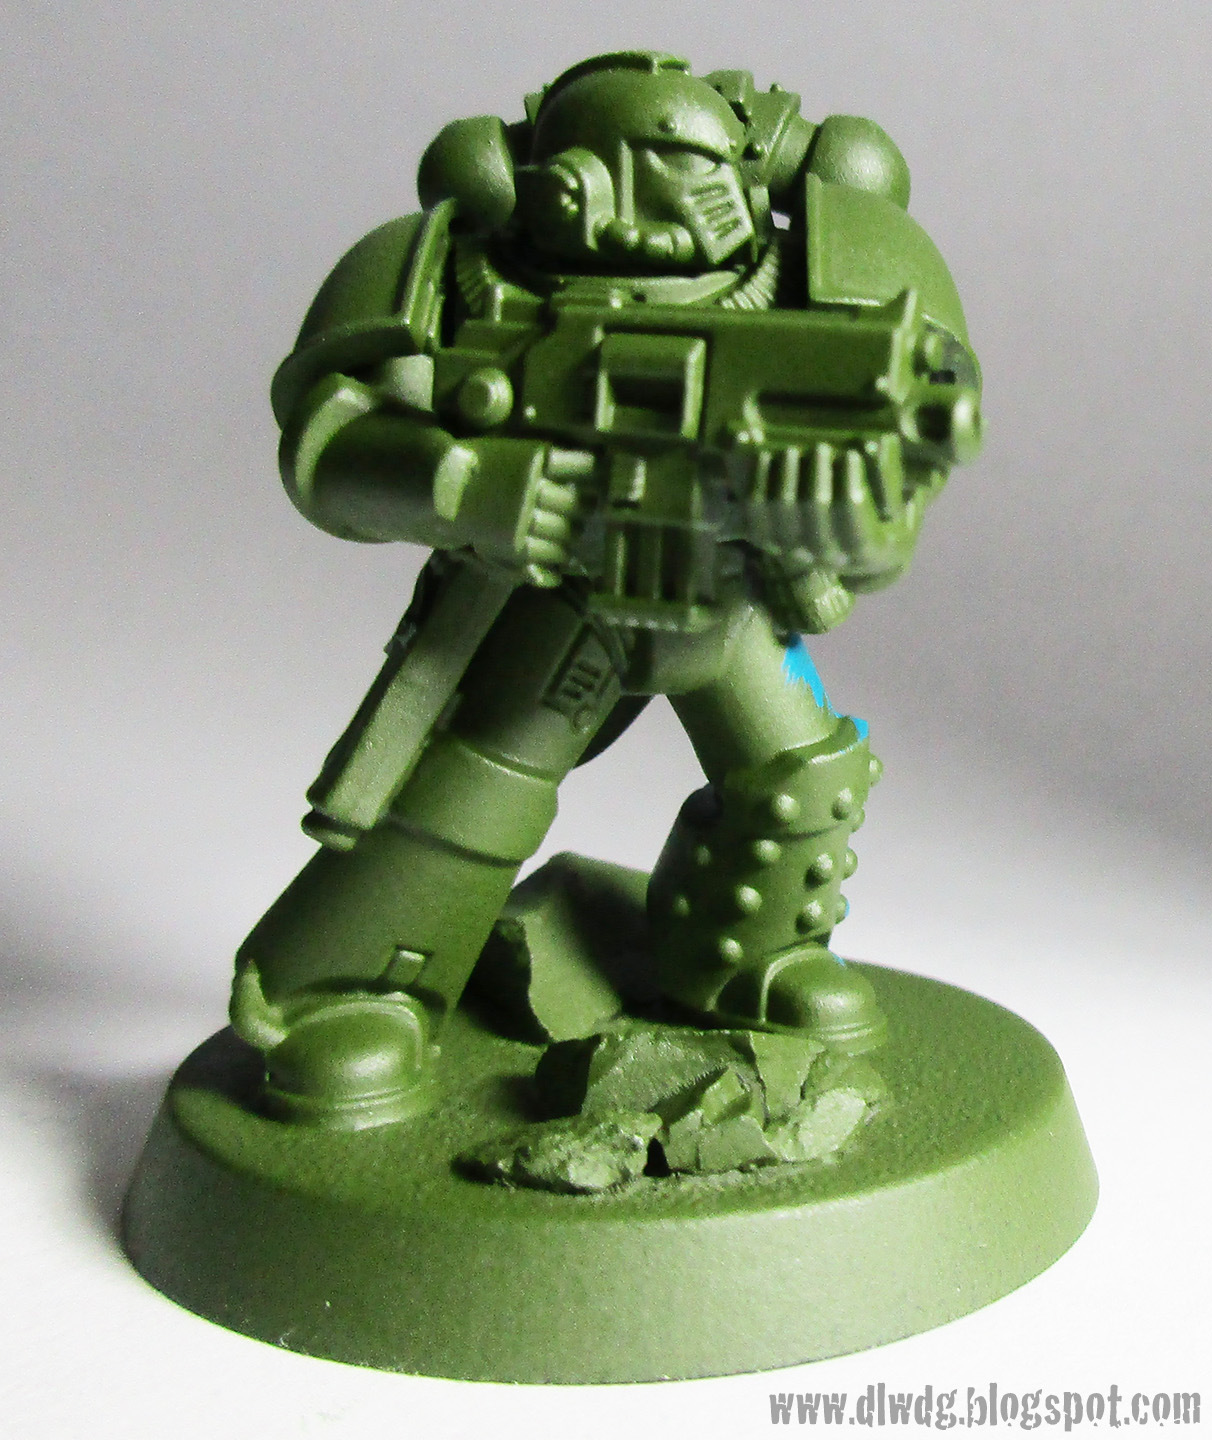 Painting miniatures color master primer - Step One Base Coat The Mini With Model Master S Medium Green Its A Matte Paint That Works Just As Well As Any Primer All Of My Minis Are Primed In One